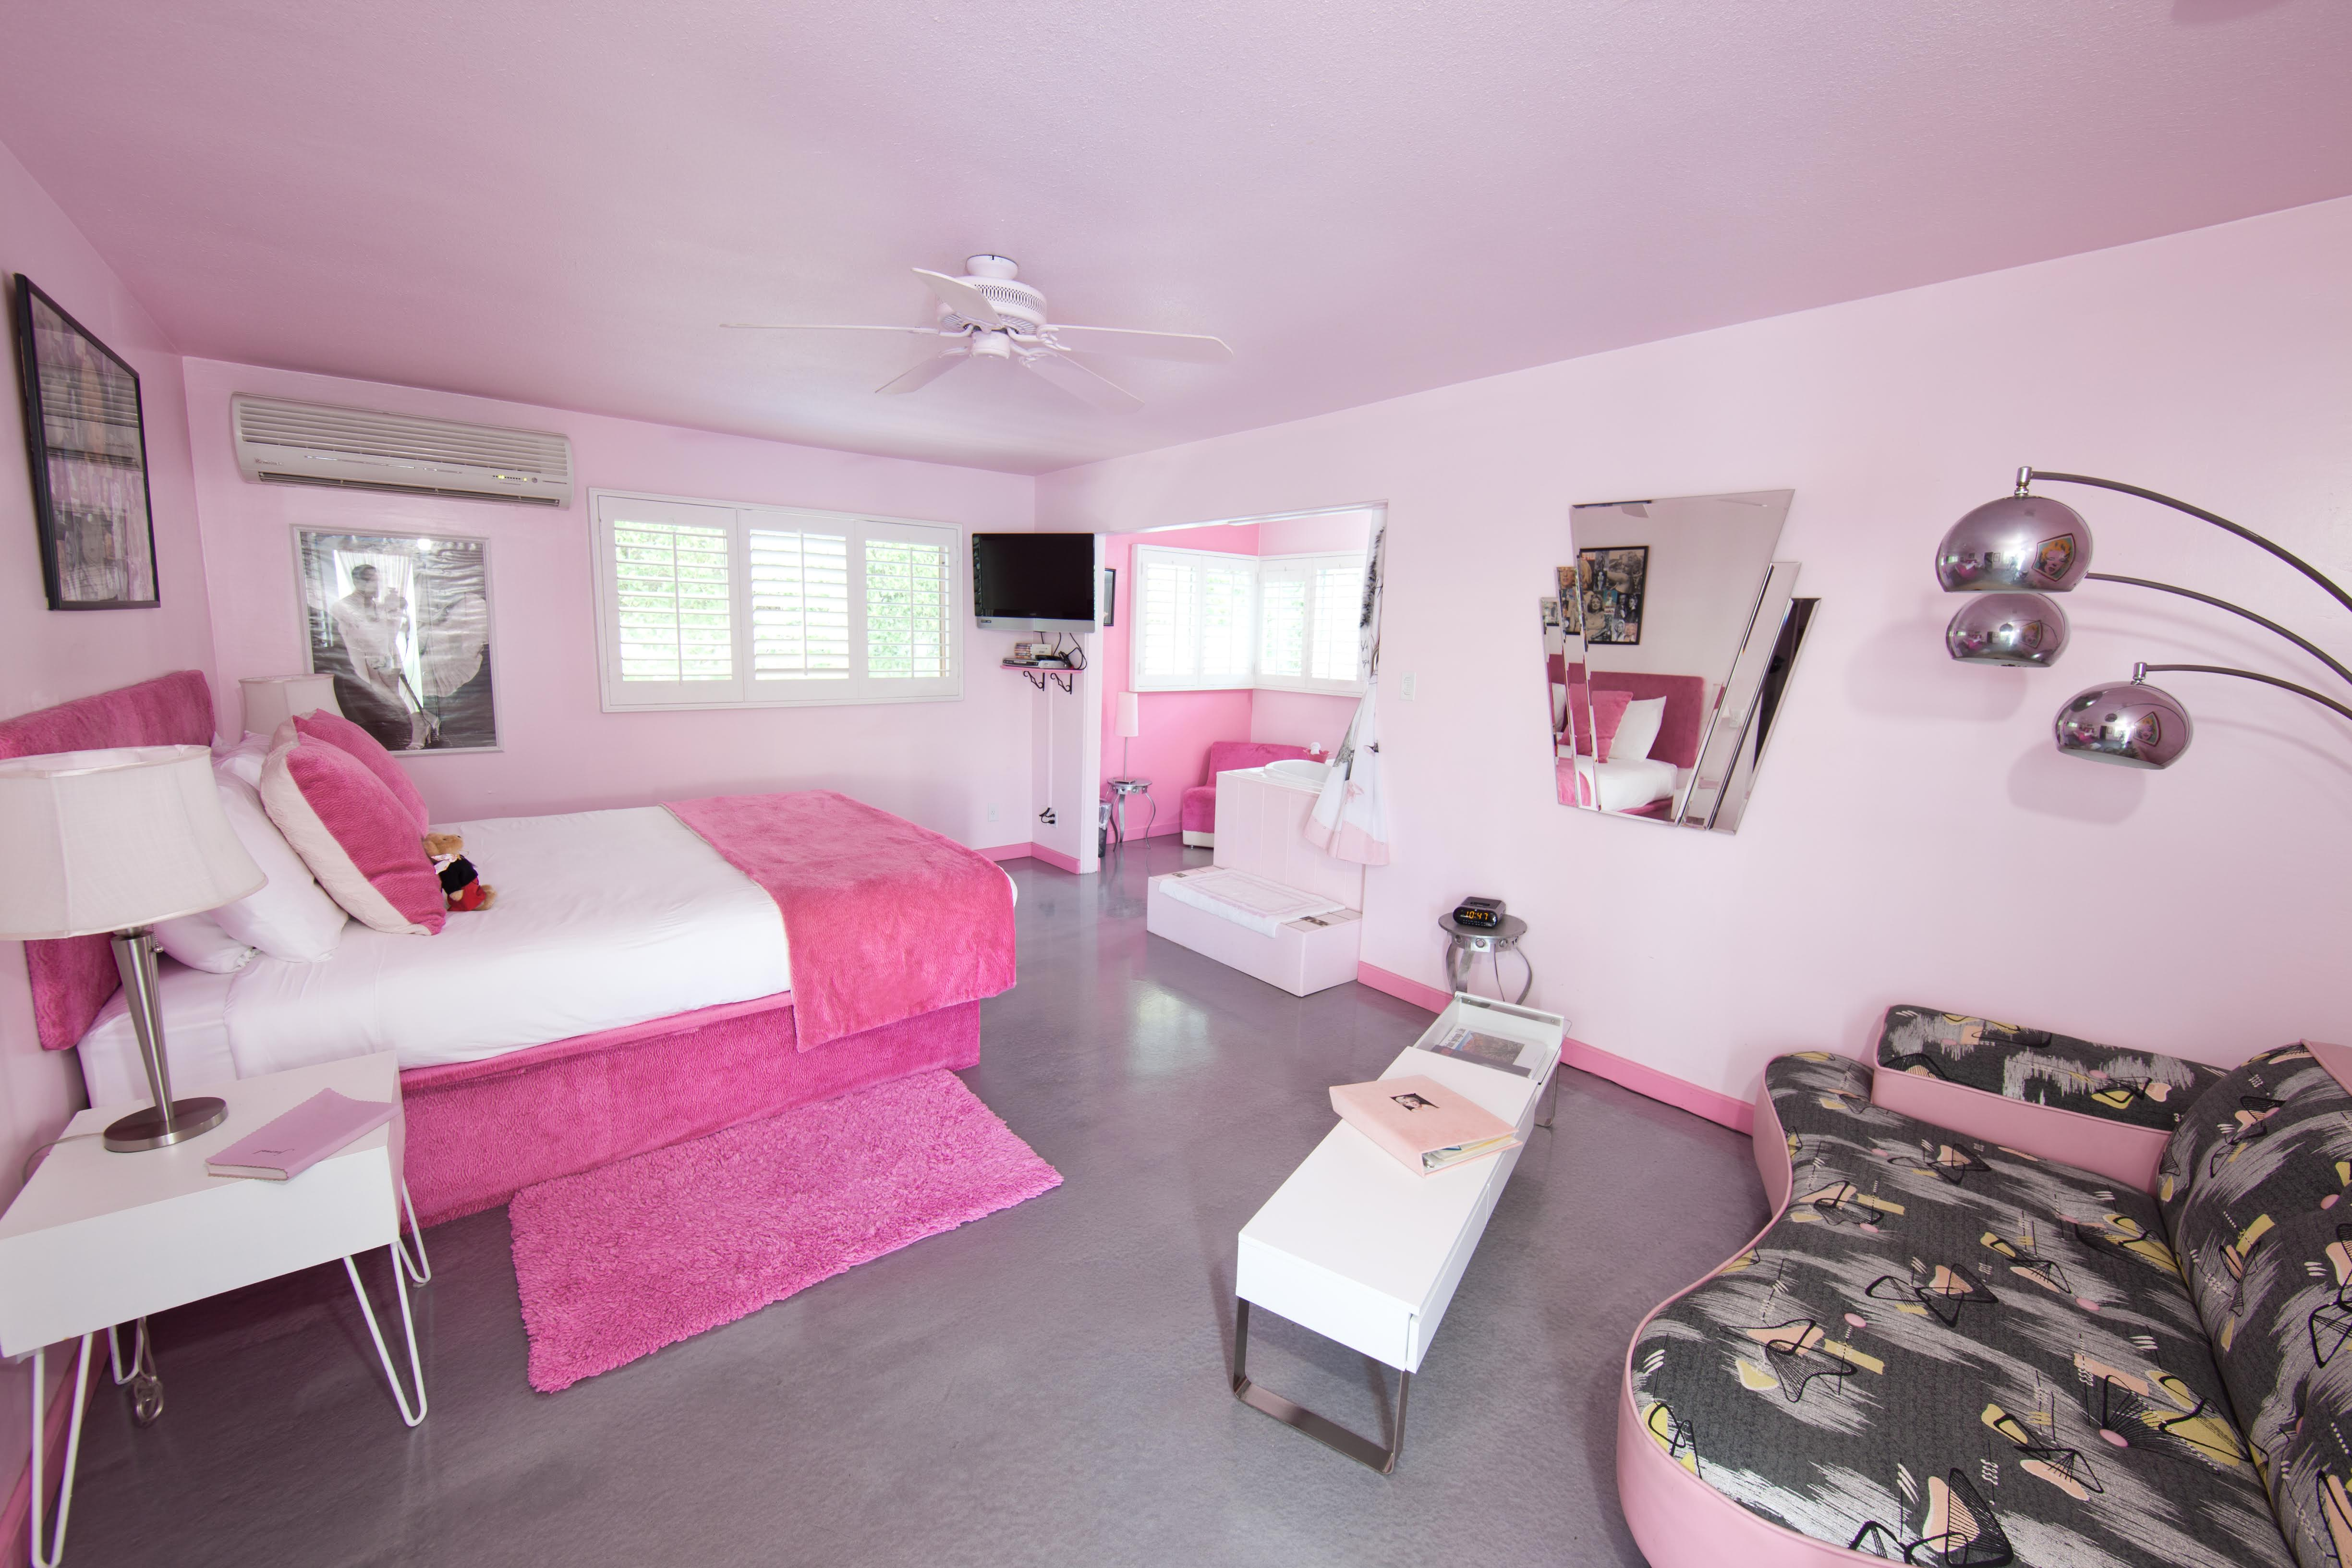 Pretty in Pink themed room at the Palm Springs Rendezvous hotel. Pink it is!